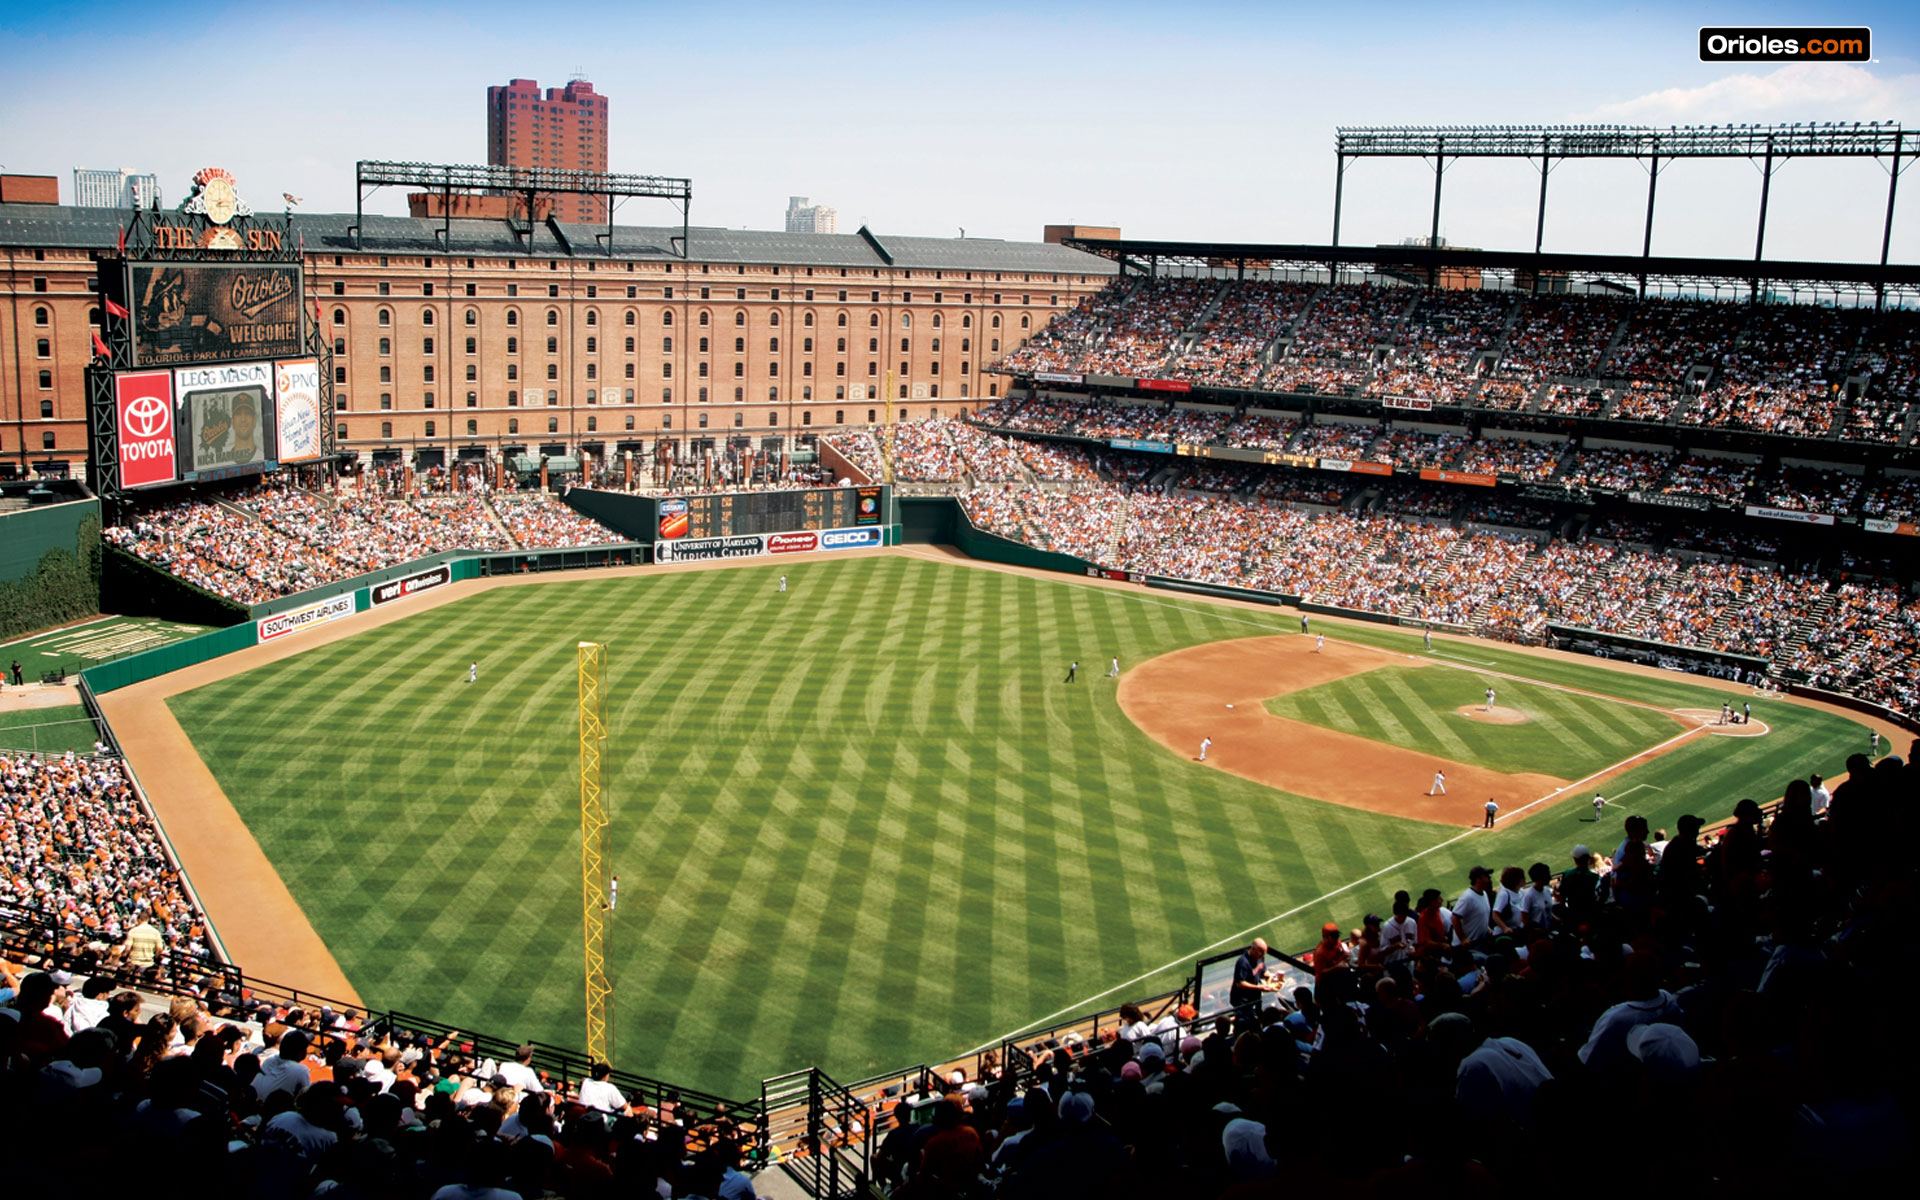 mlb wallpaperscombulkuploadbaseballBaltimore OriolesBaltimore 1920x1200